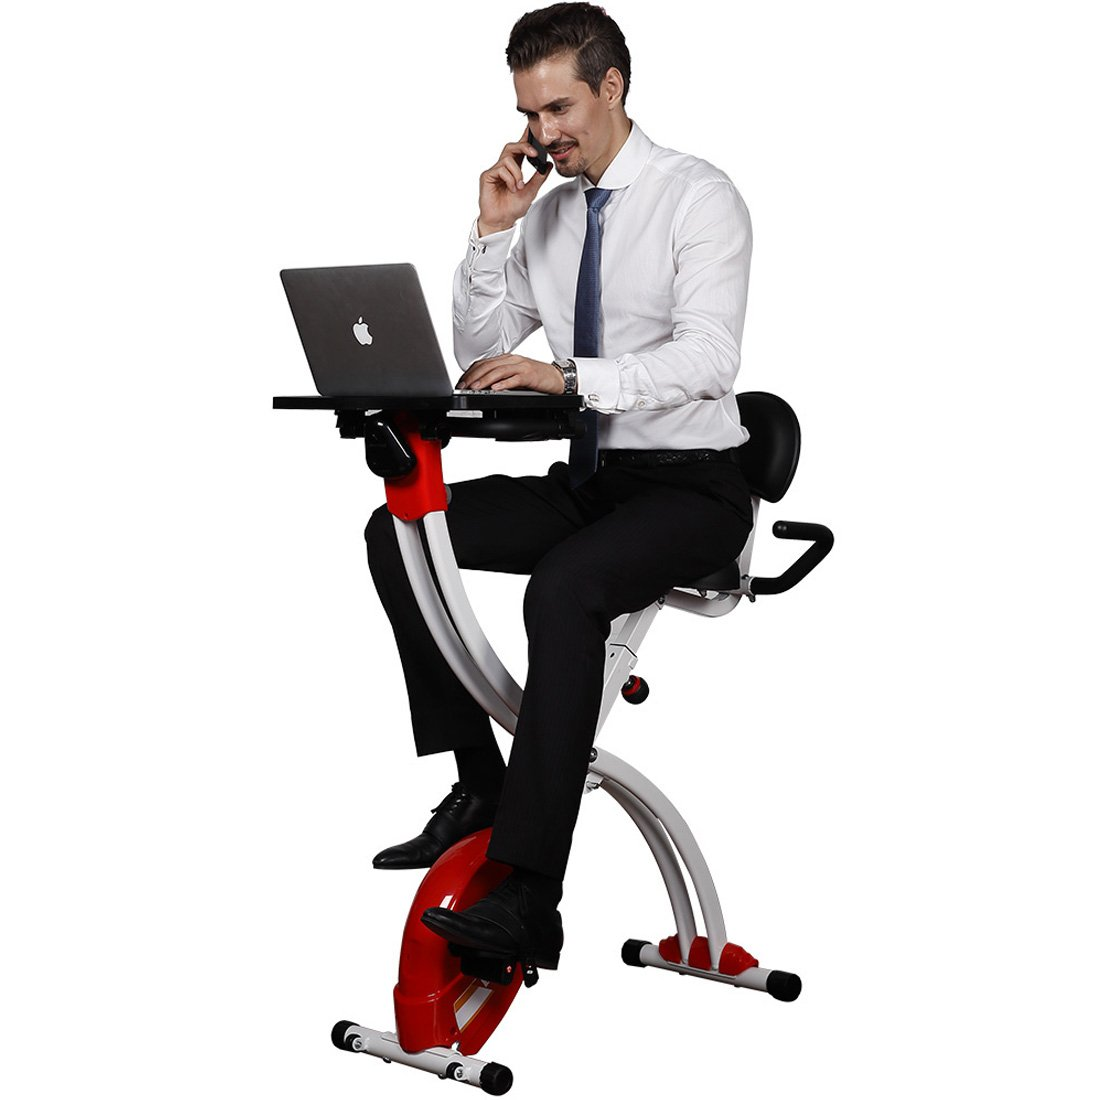 Loctek Foldable Office Cycling Workstation Desk Exercise Bike with Laptop Table, Red by Loctek